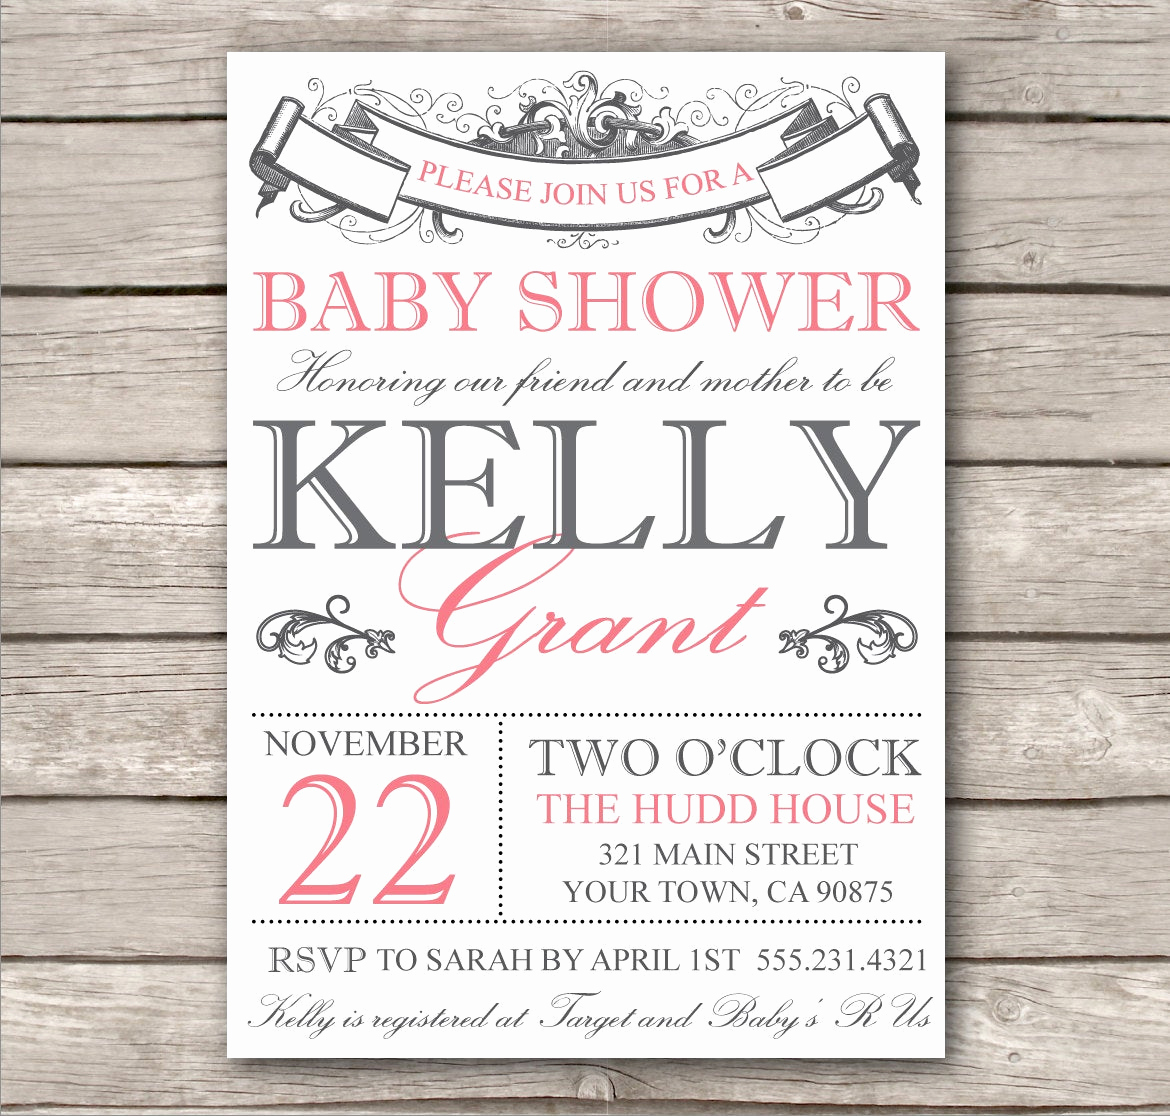 Bridal Shower Invite Template Inspirational Bridal Shower Invitation or Baby Shower Invitation by